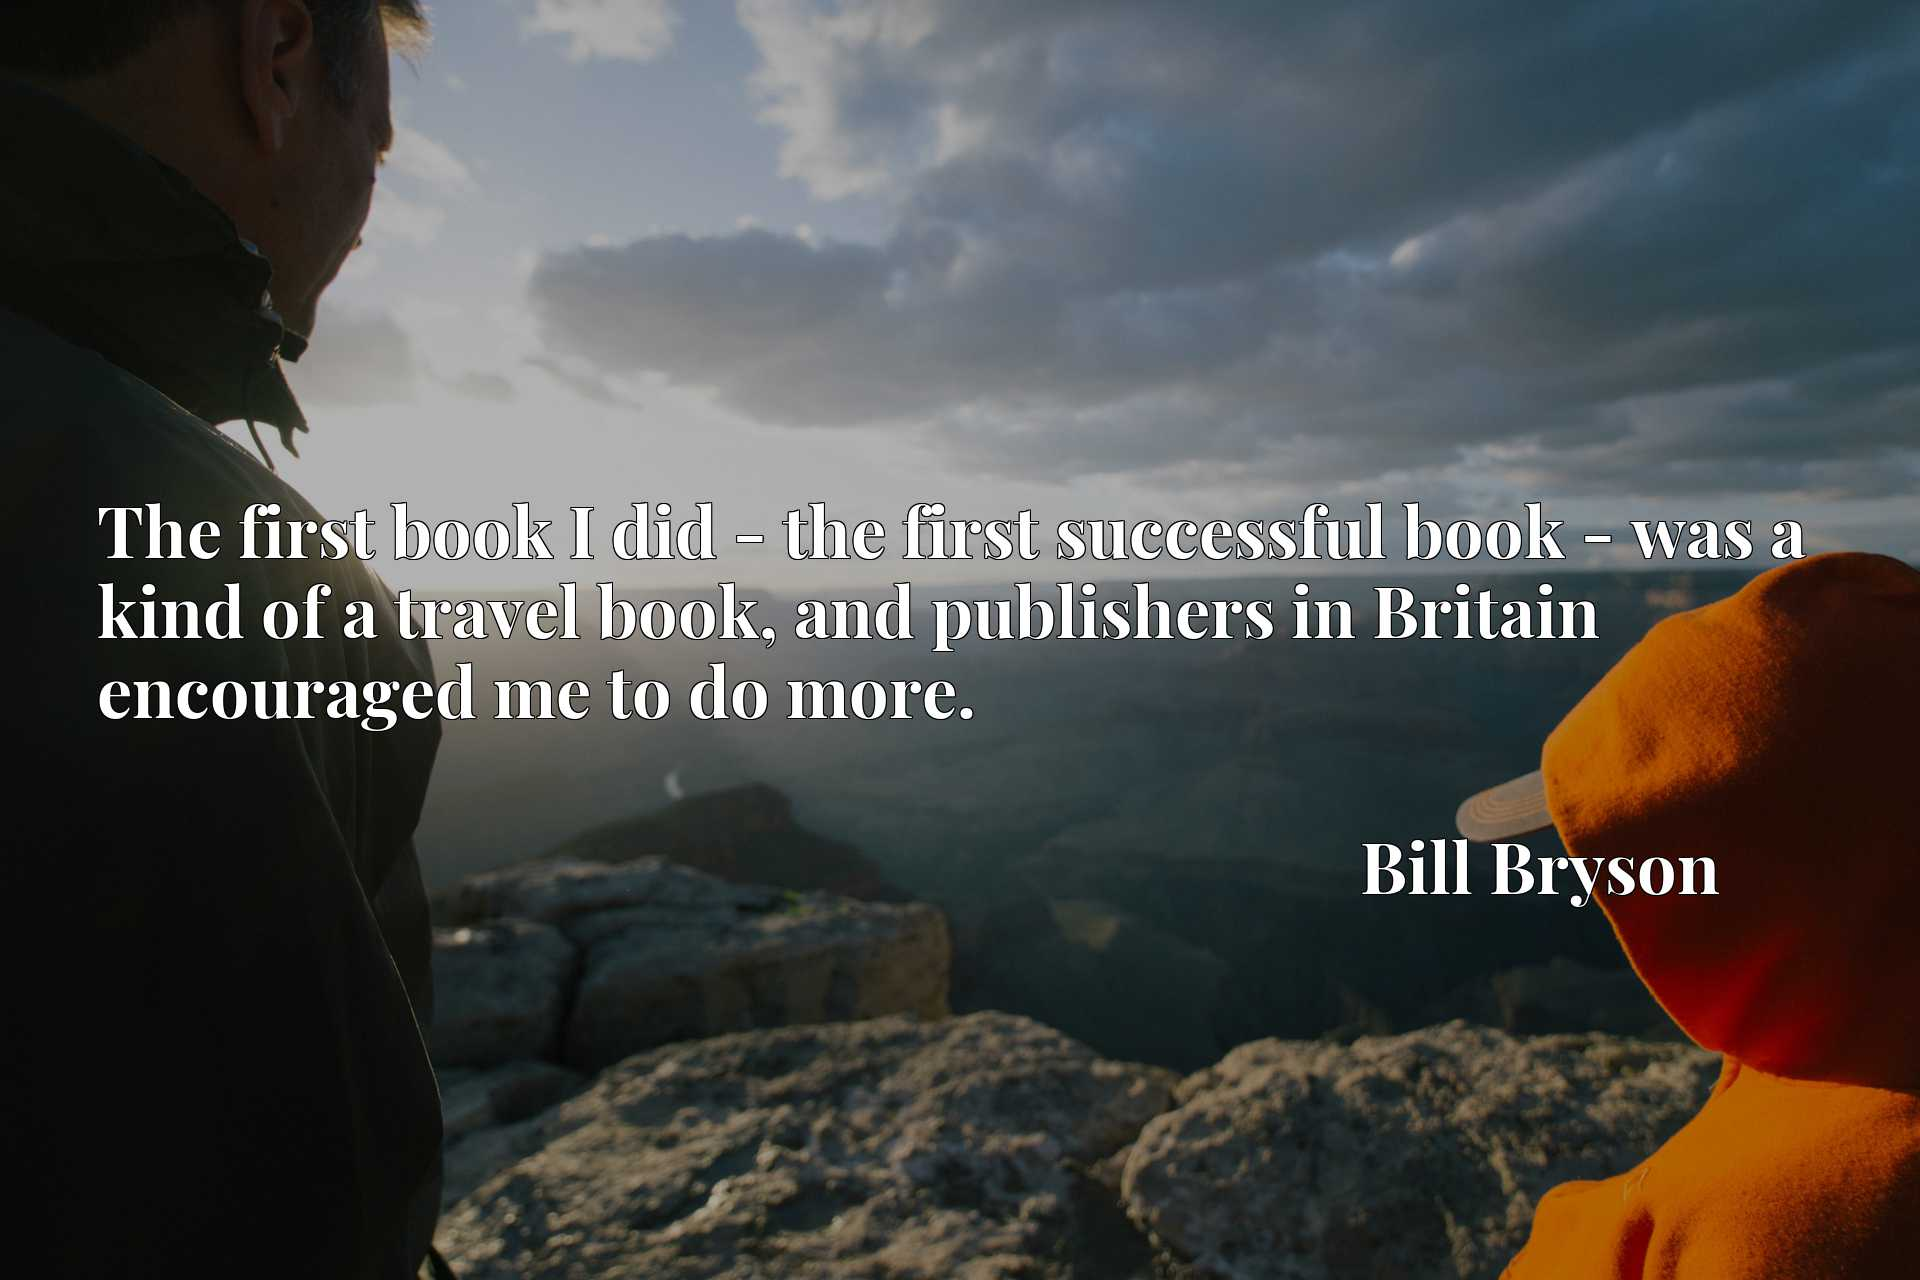 The first book I did - the first successful book - was a kind of a travel book, and publishers in Britain encouraged me to do more.